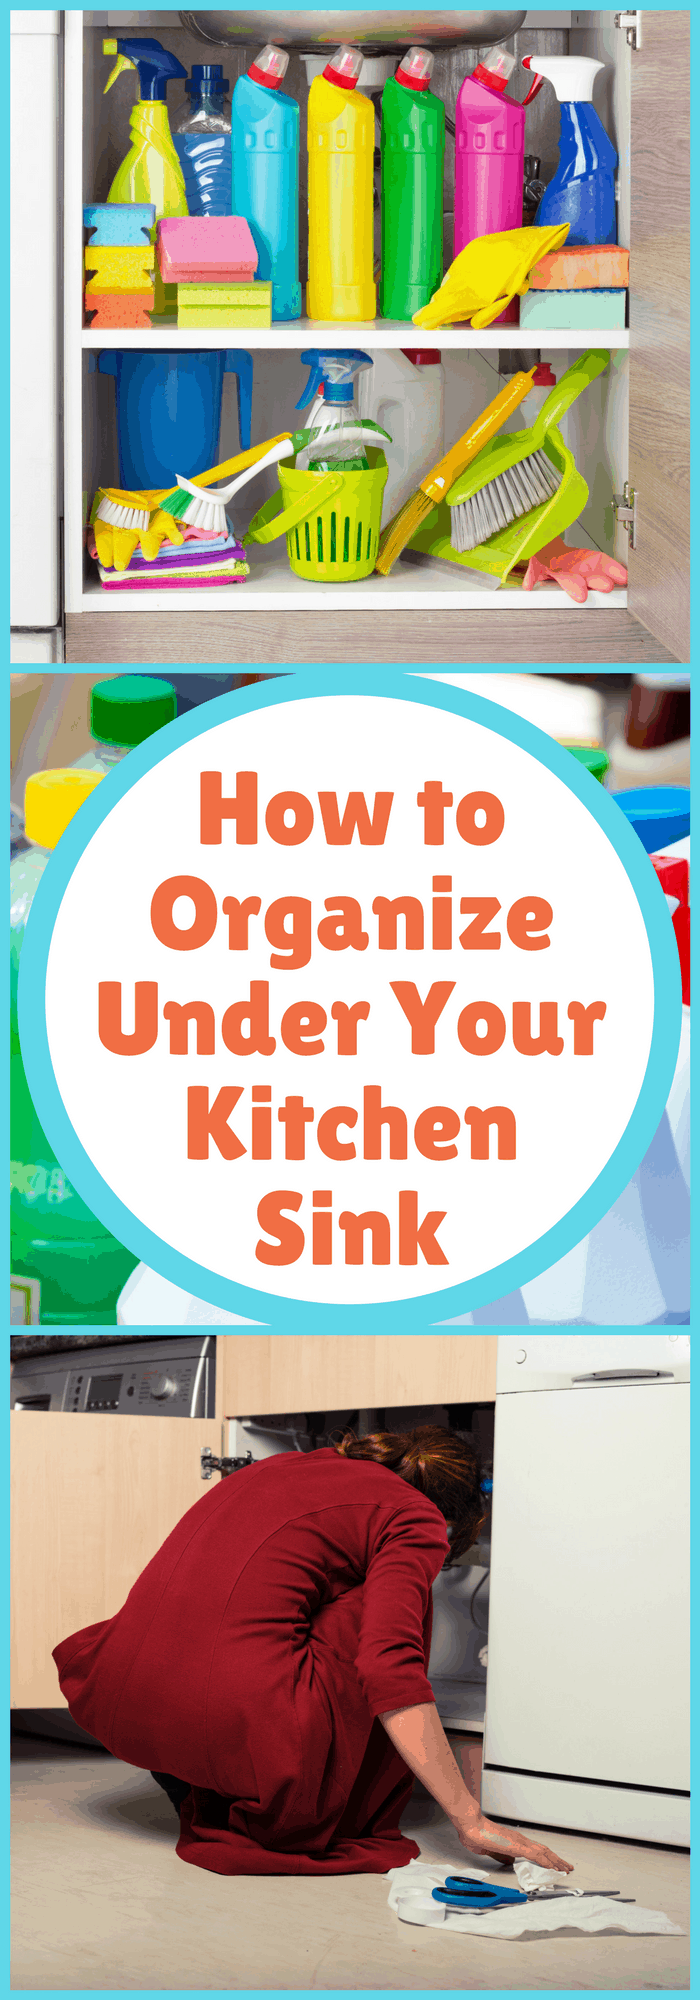 Organization--How to Organize Under Your Kitchen Sink--The Organized Mom